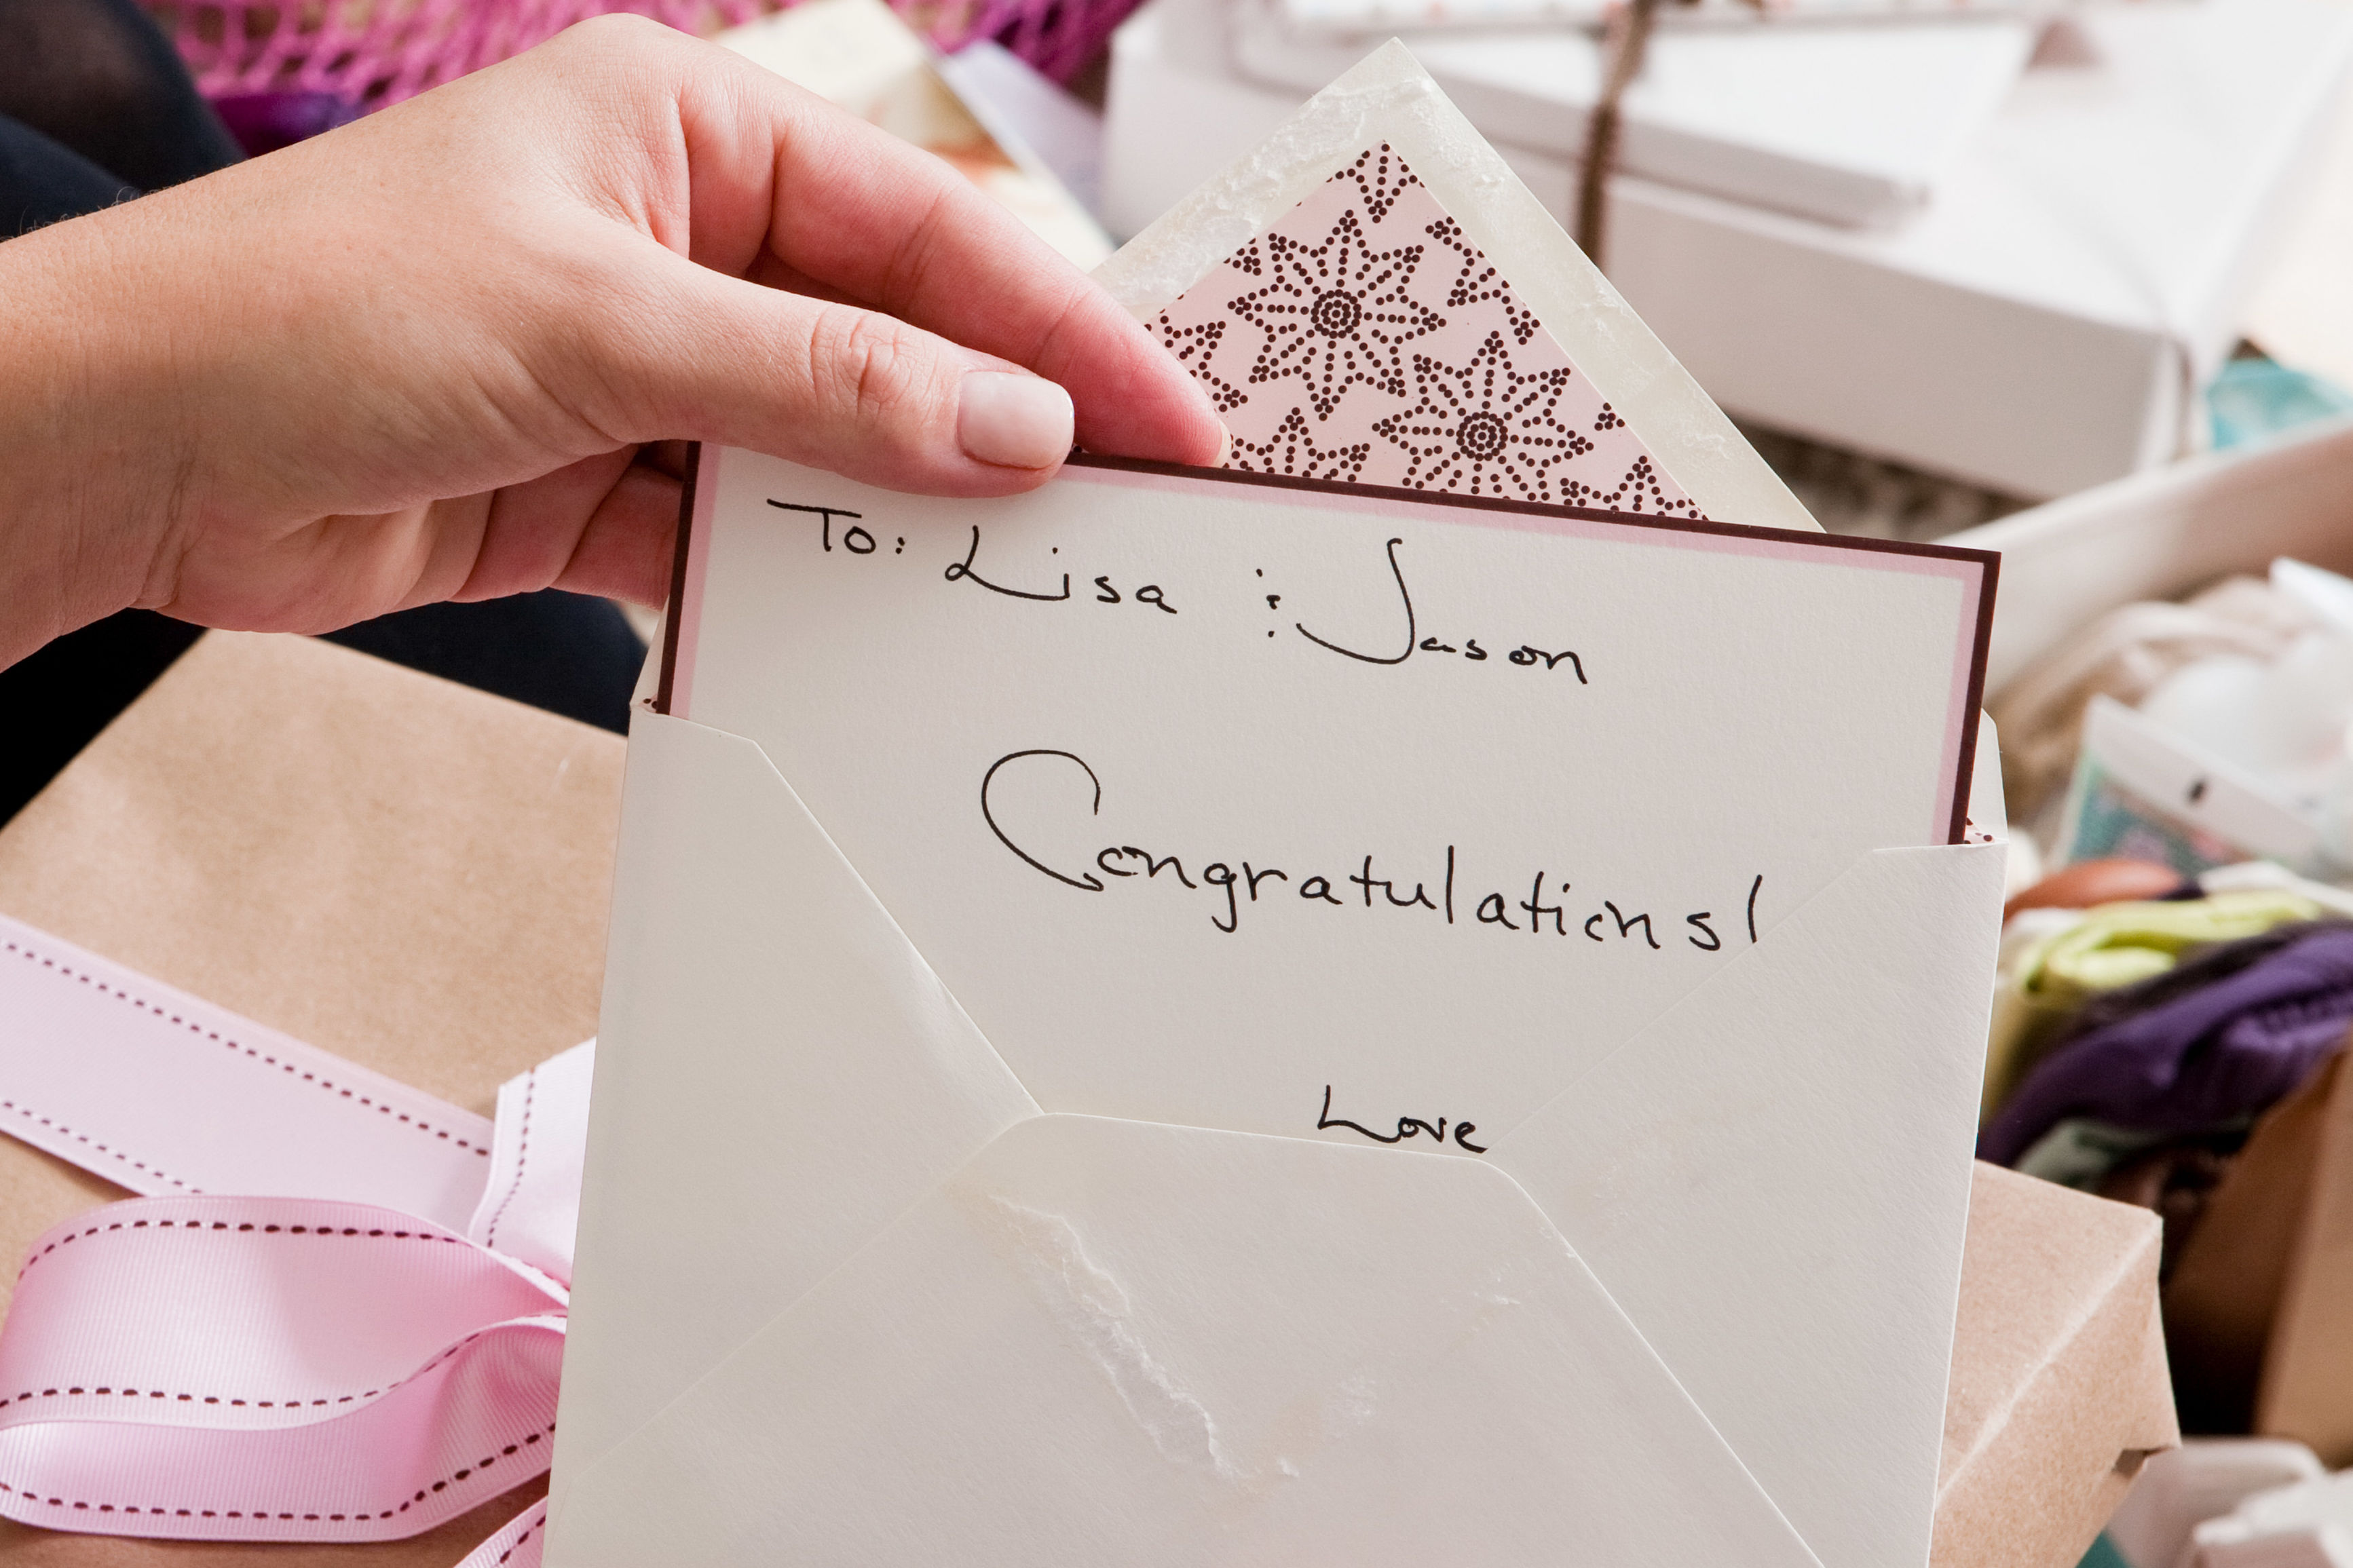 33 Things to Write in a Wedding Card If You're Not Sure What's Appropriate